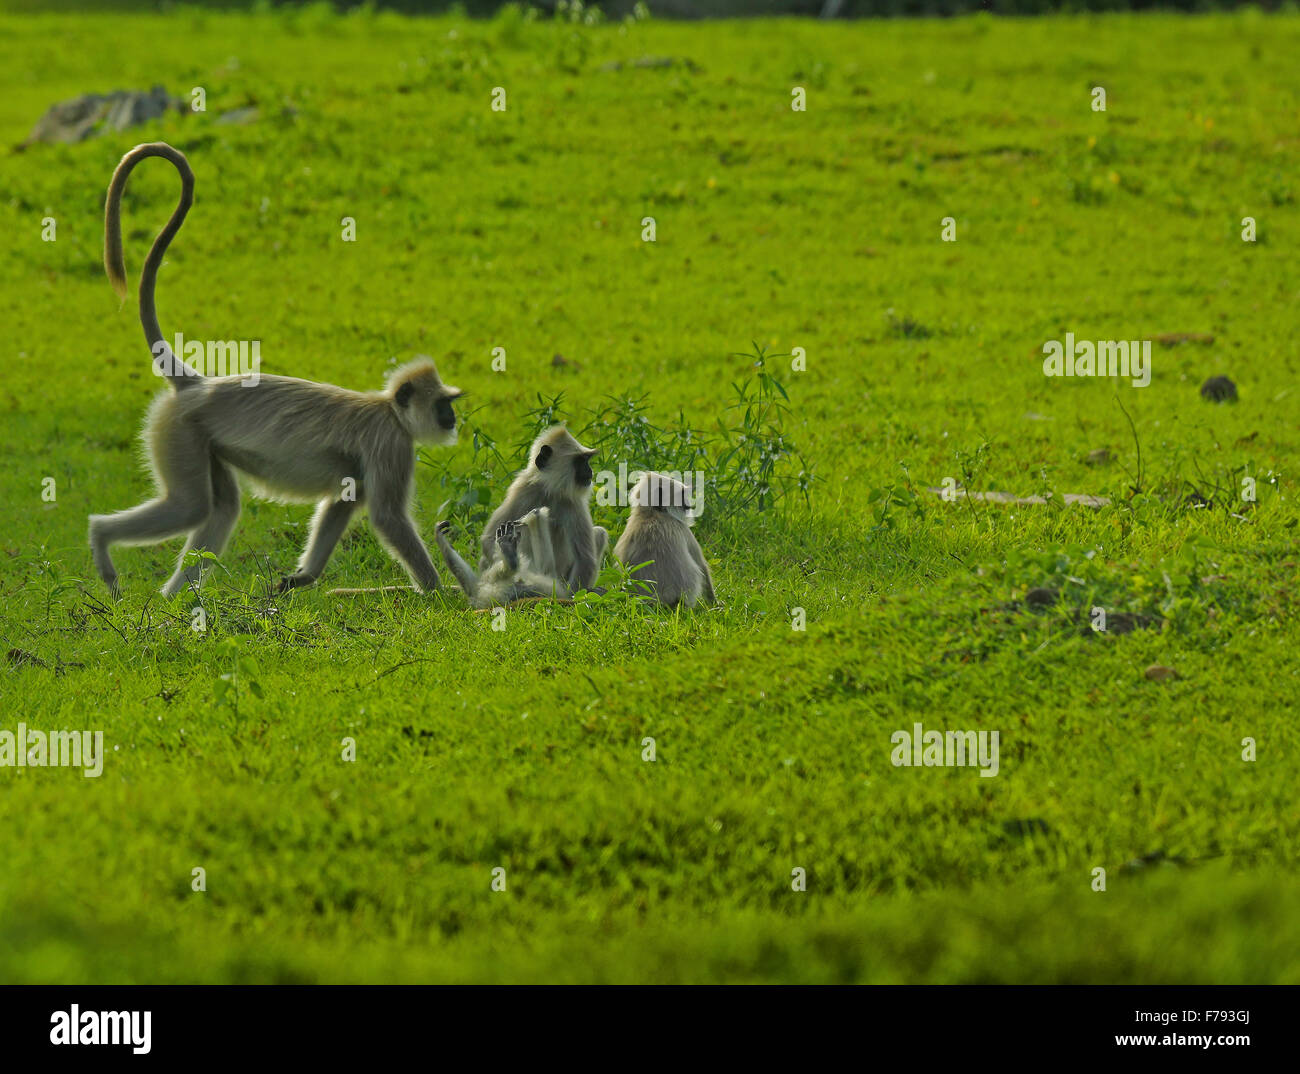 Hanuman langur mother and children - Stock Image